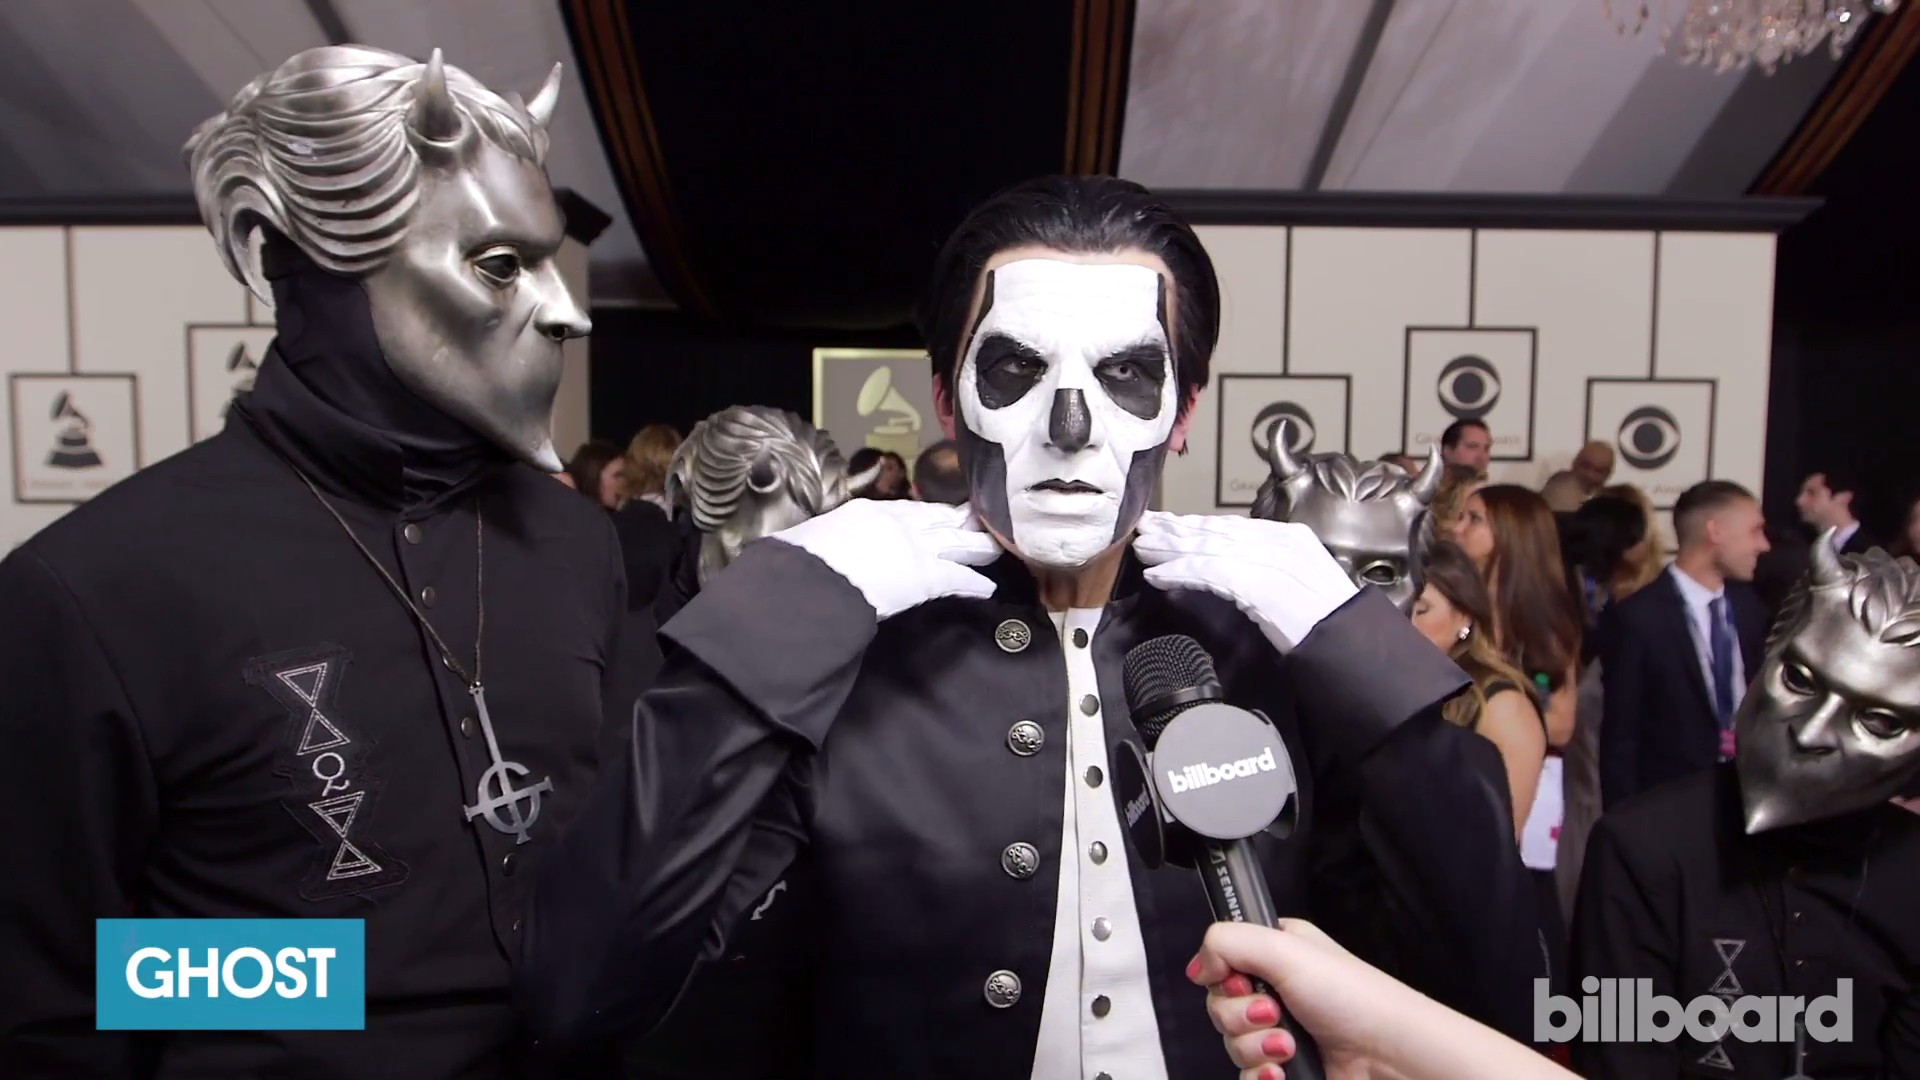 Billboard Interviews Ghost On The Red Carpet At The Grammys